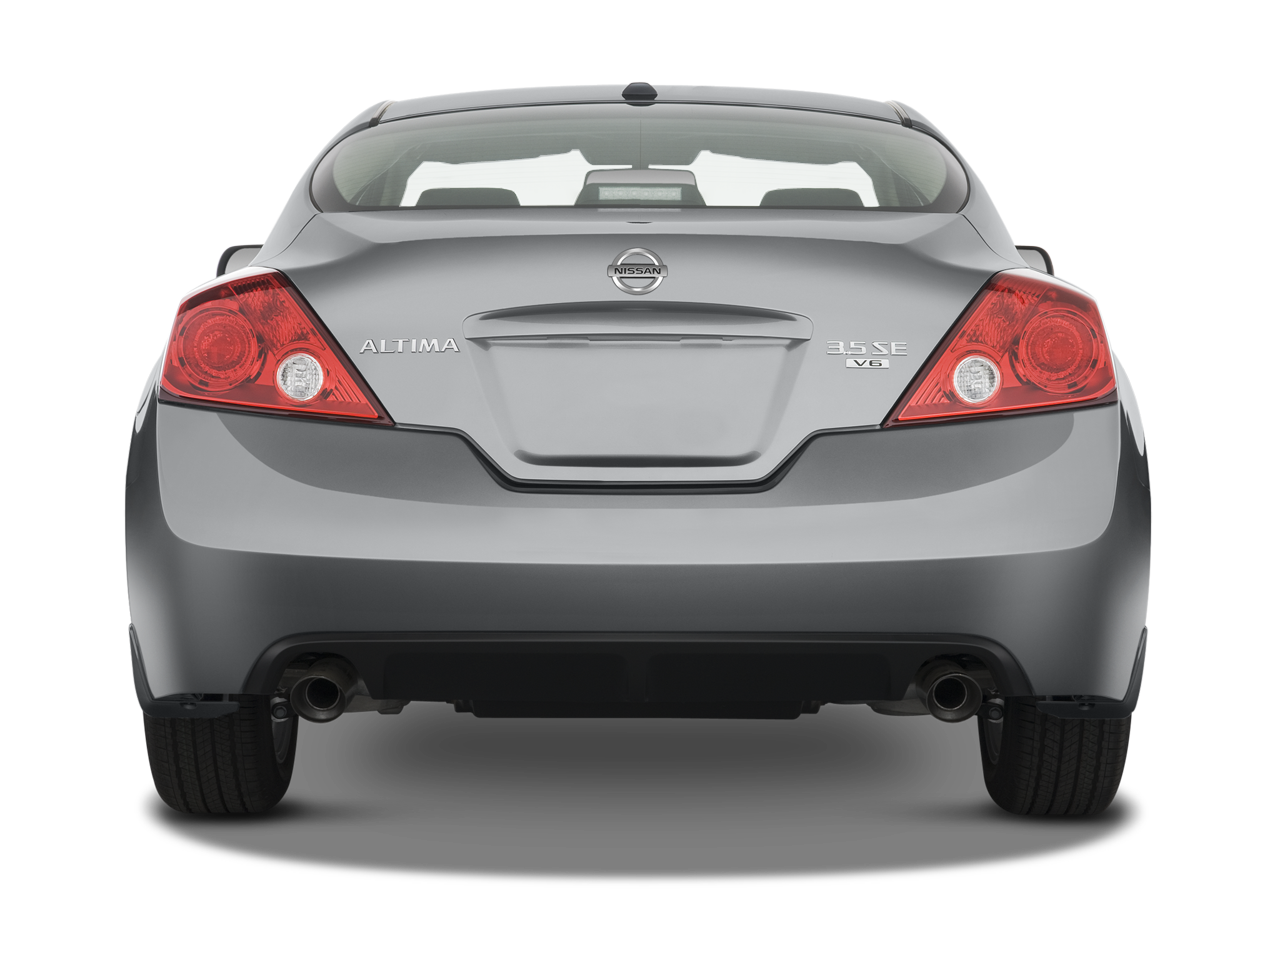 2009 Nissan Altima Coupe Review Car Reviews 2018